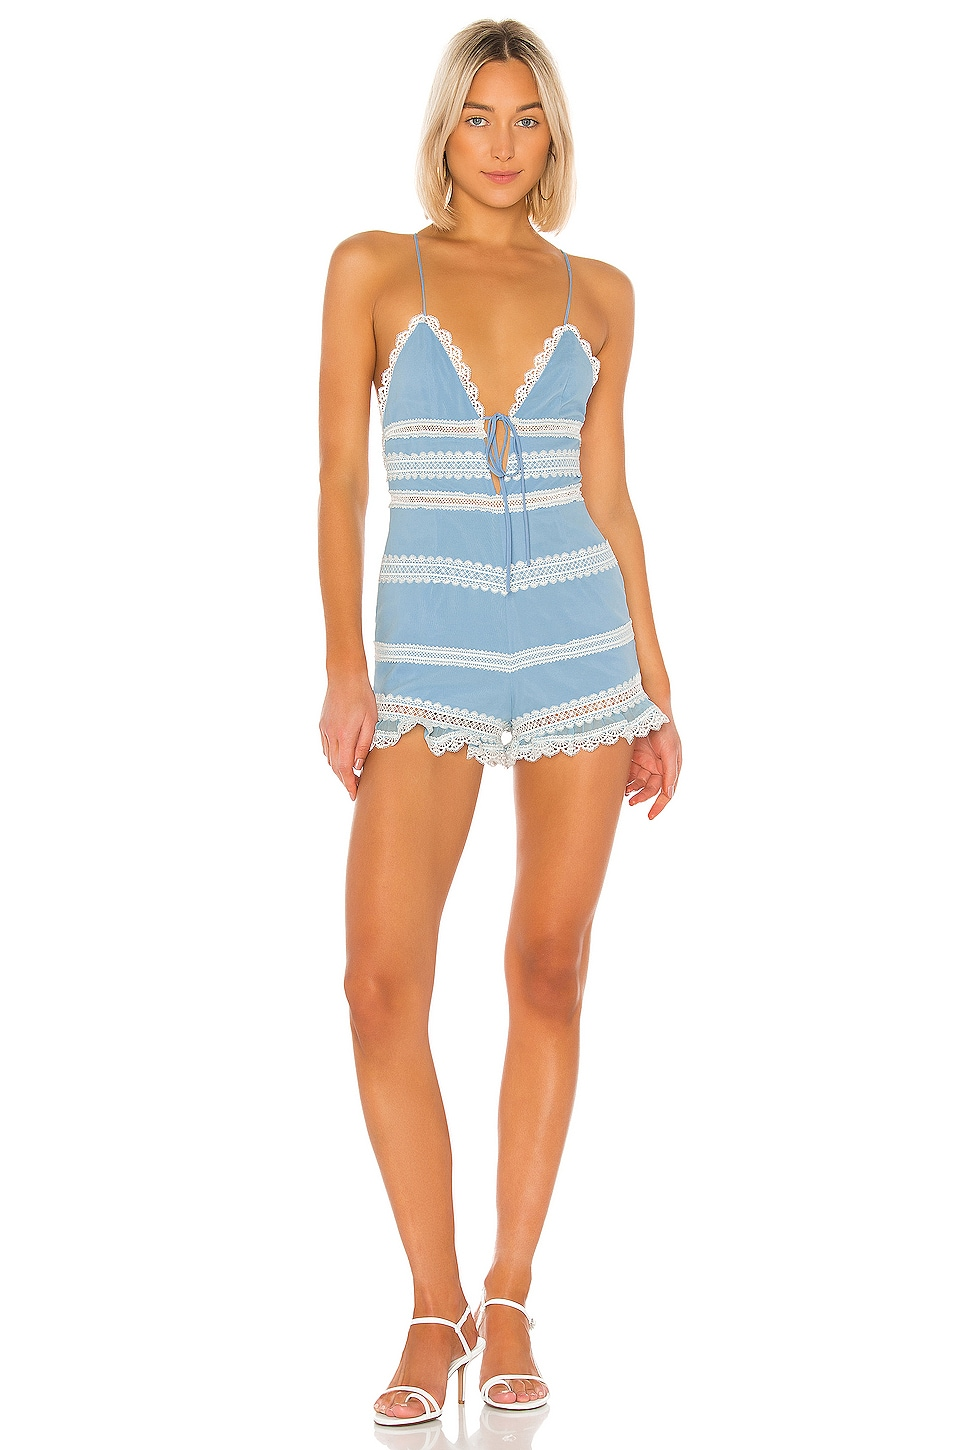 X by NBD Malani Romper in Baby Blue & White